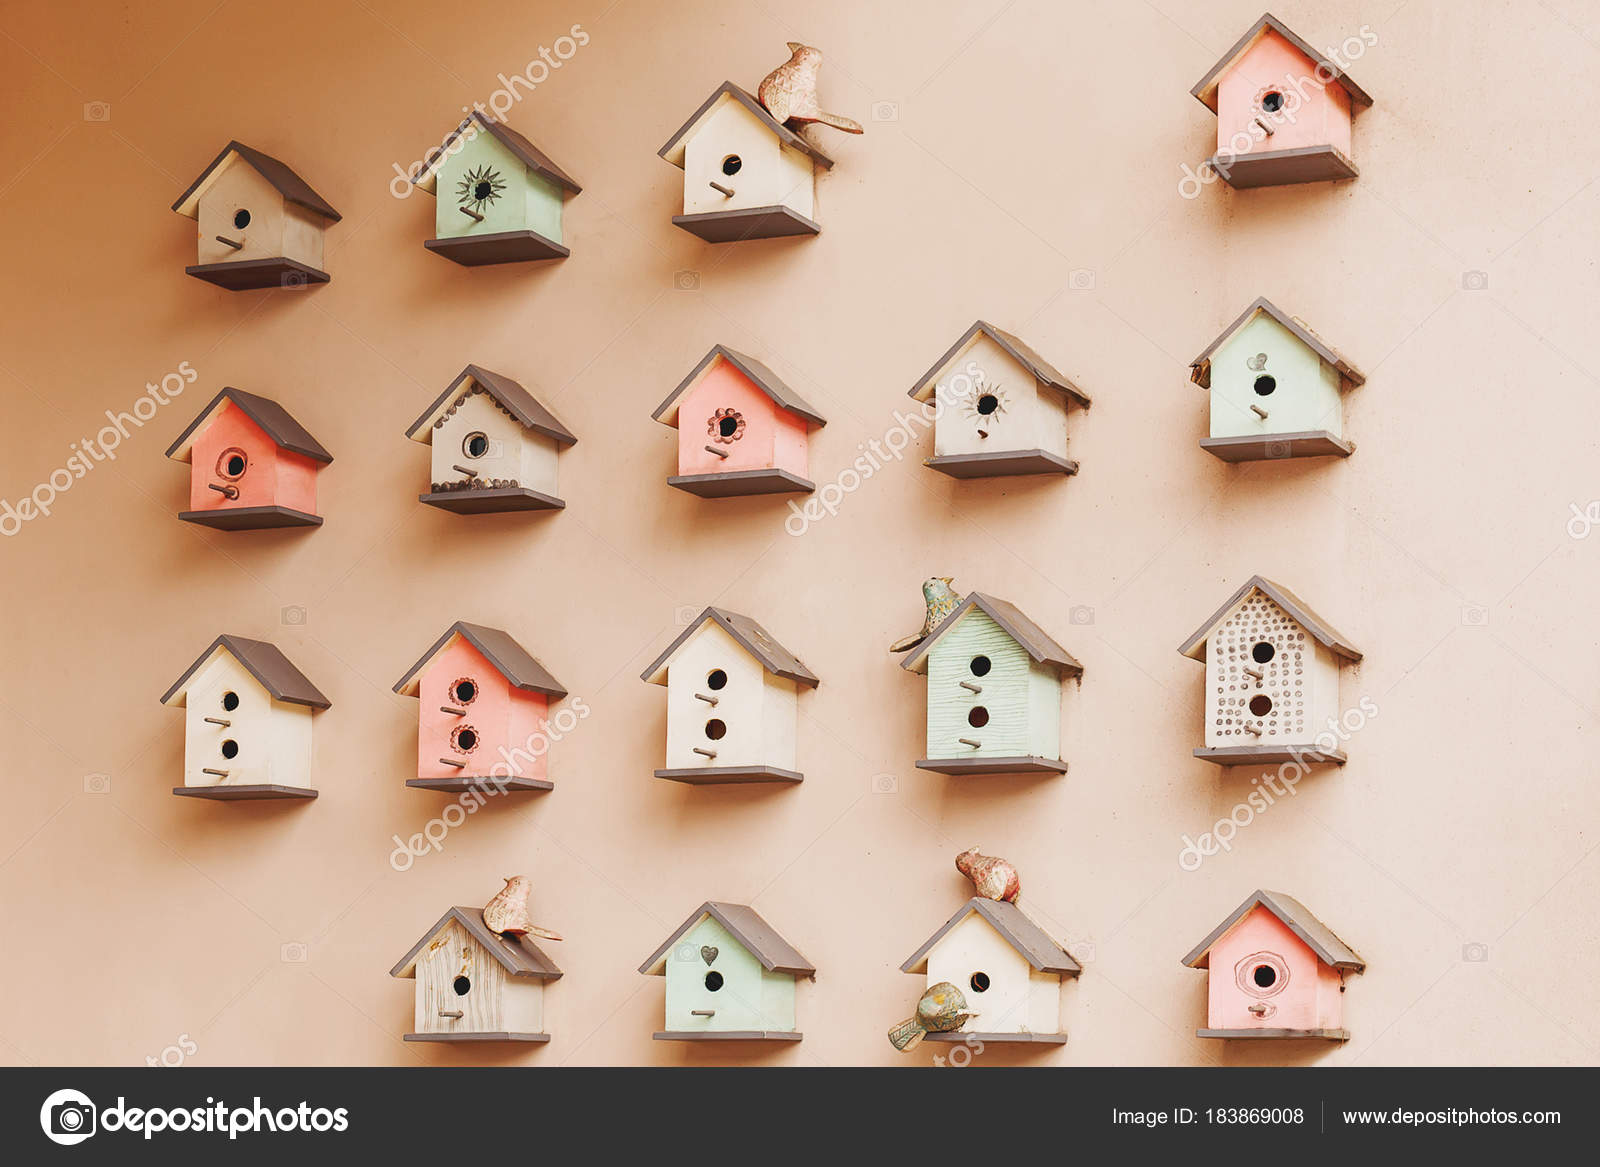 Pictures Decorating Bird Houses Outdoor Wall Decoration Small